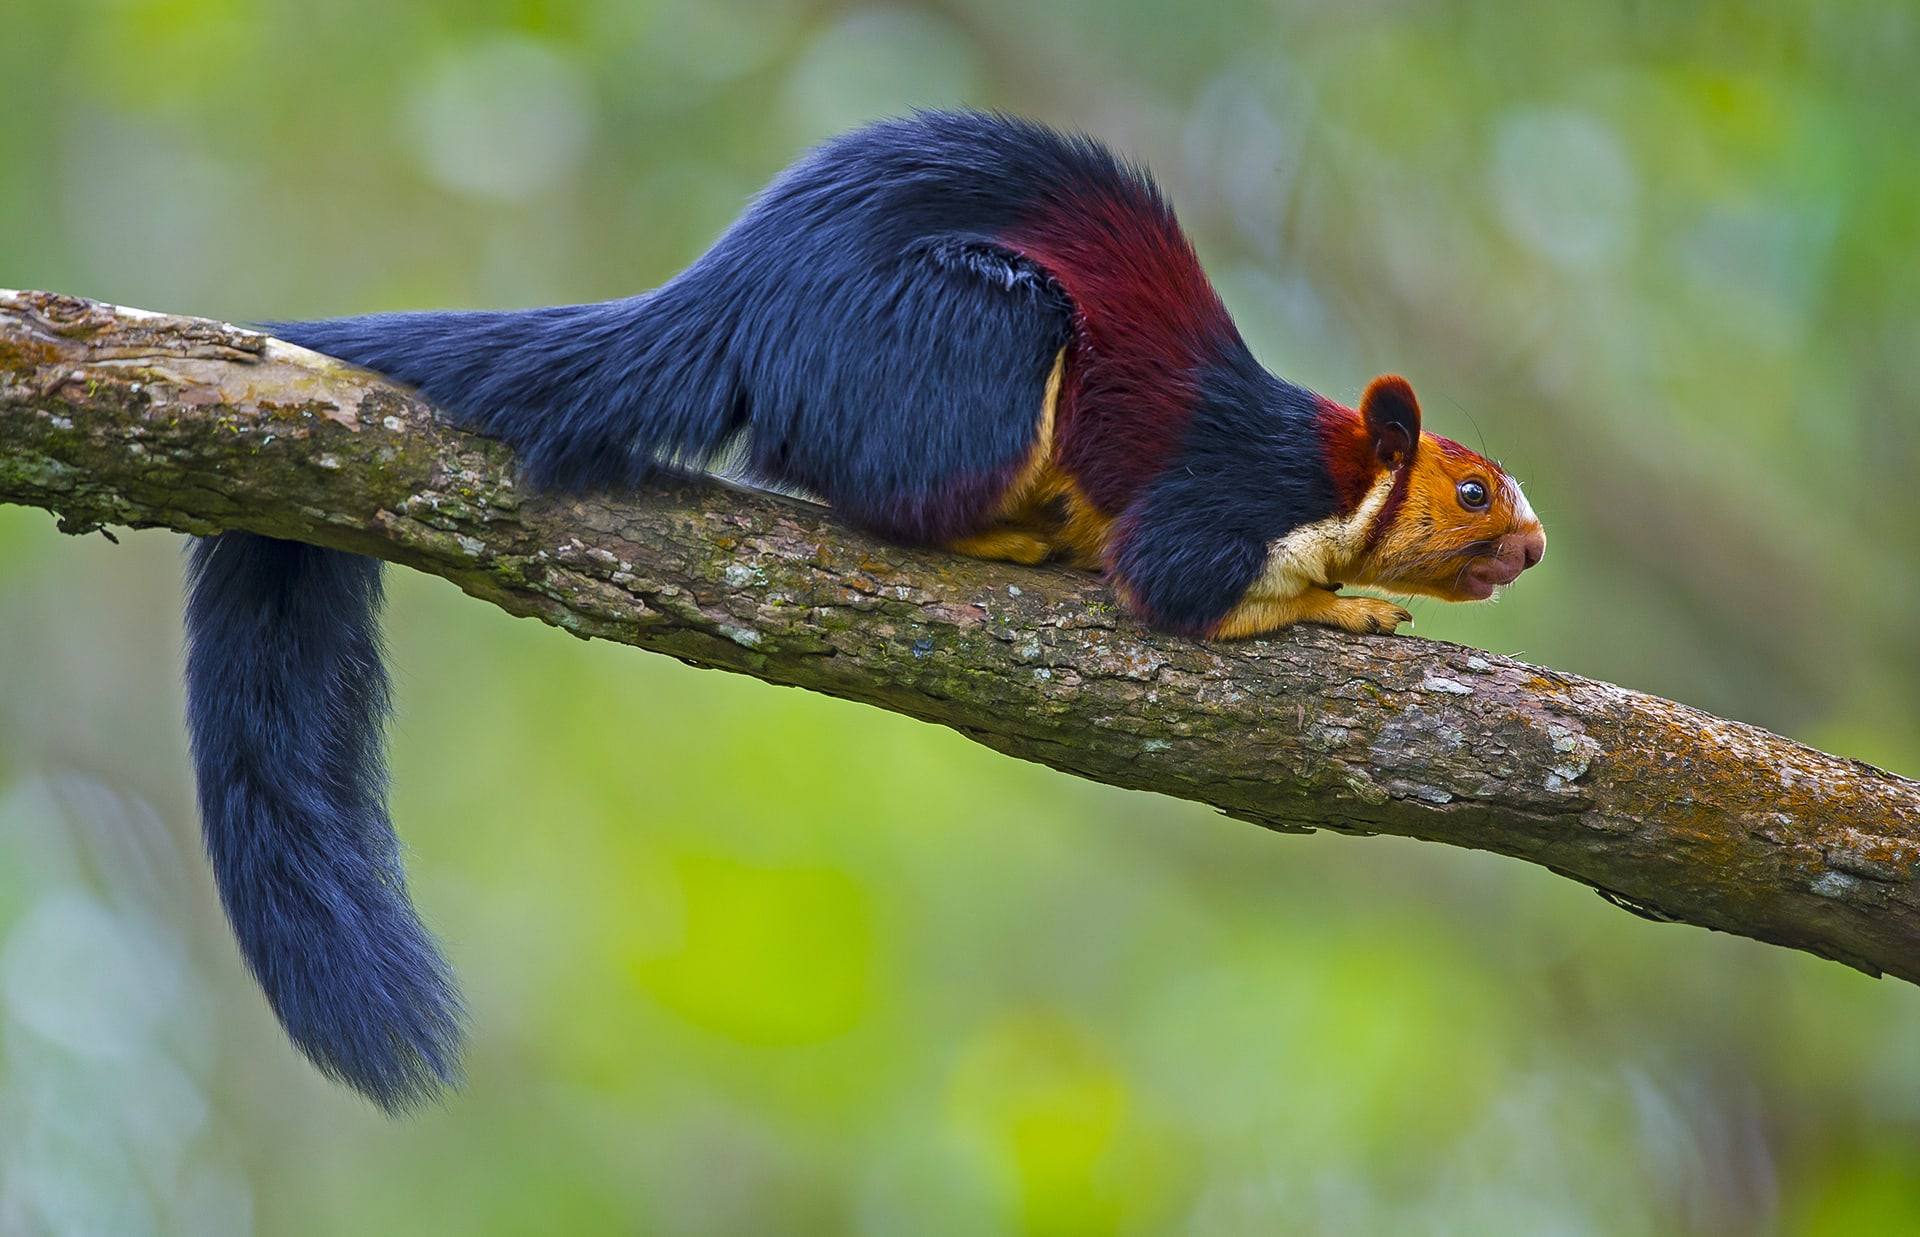 The glossy black Nilgiri langur (top), with a distinctive mane of grey, and the Malabar giant squirrel (above), with a coat of black, maroon, and cream, are among the many arboreal denizens of this forest. While langurs are mostly seen in troops of 9 to 12 individuals, the squirrel is usually solitary.